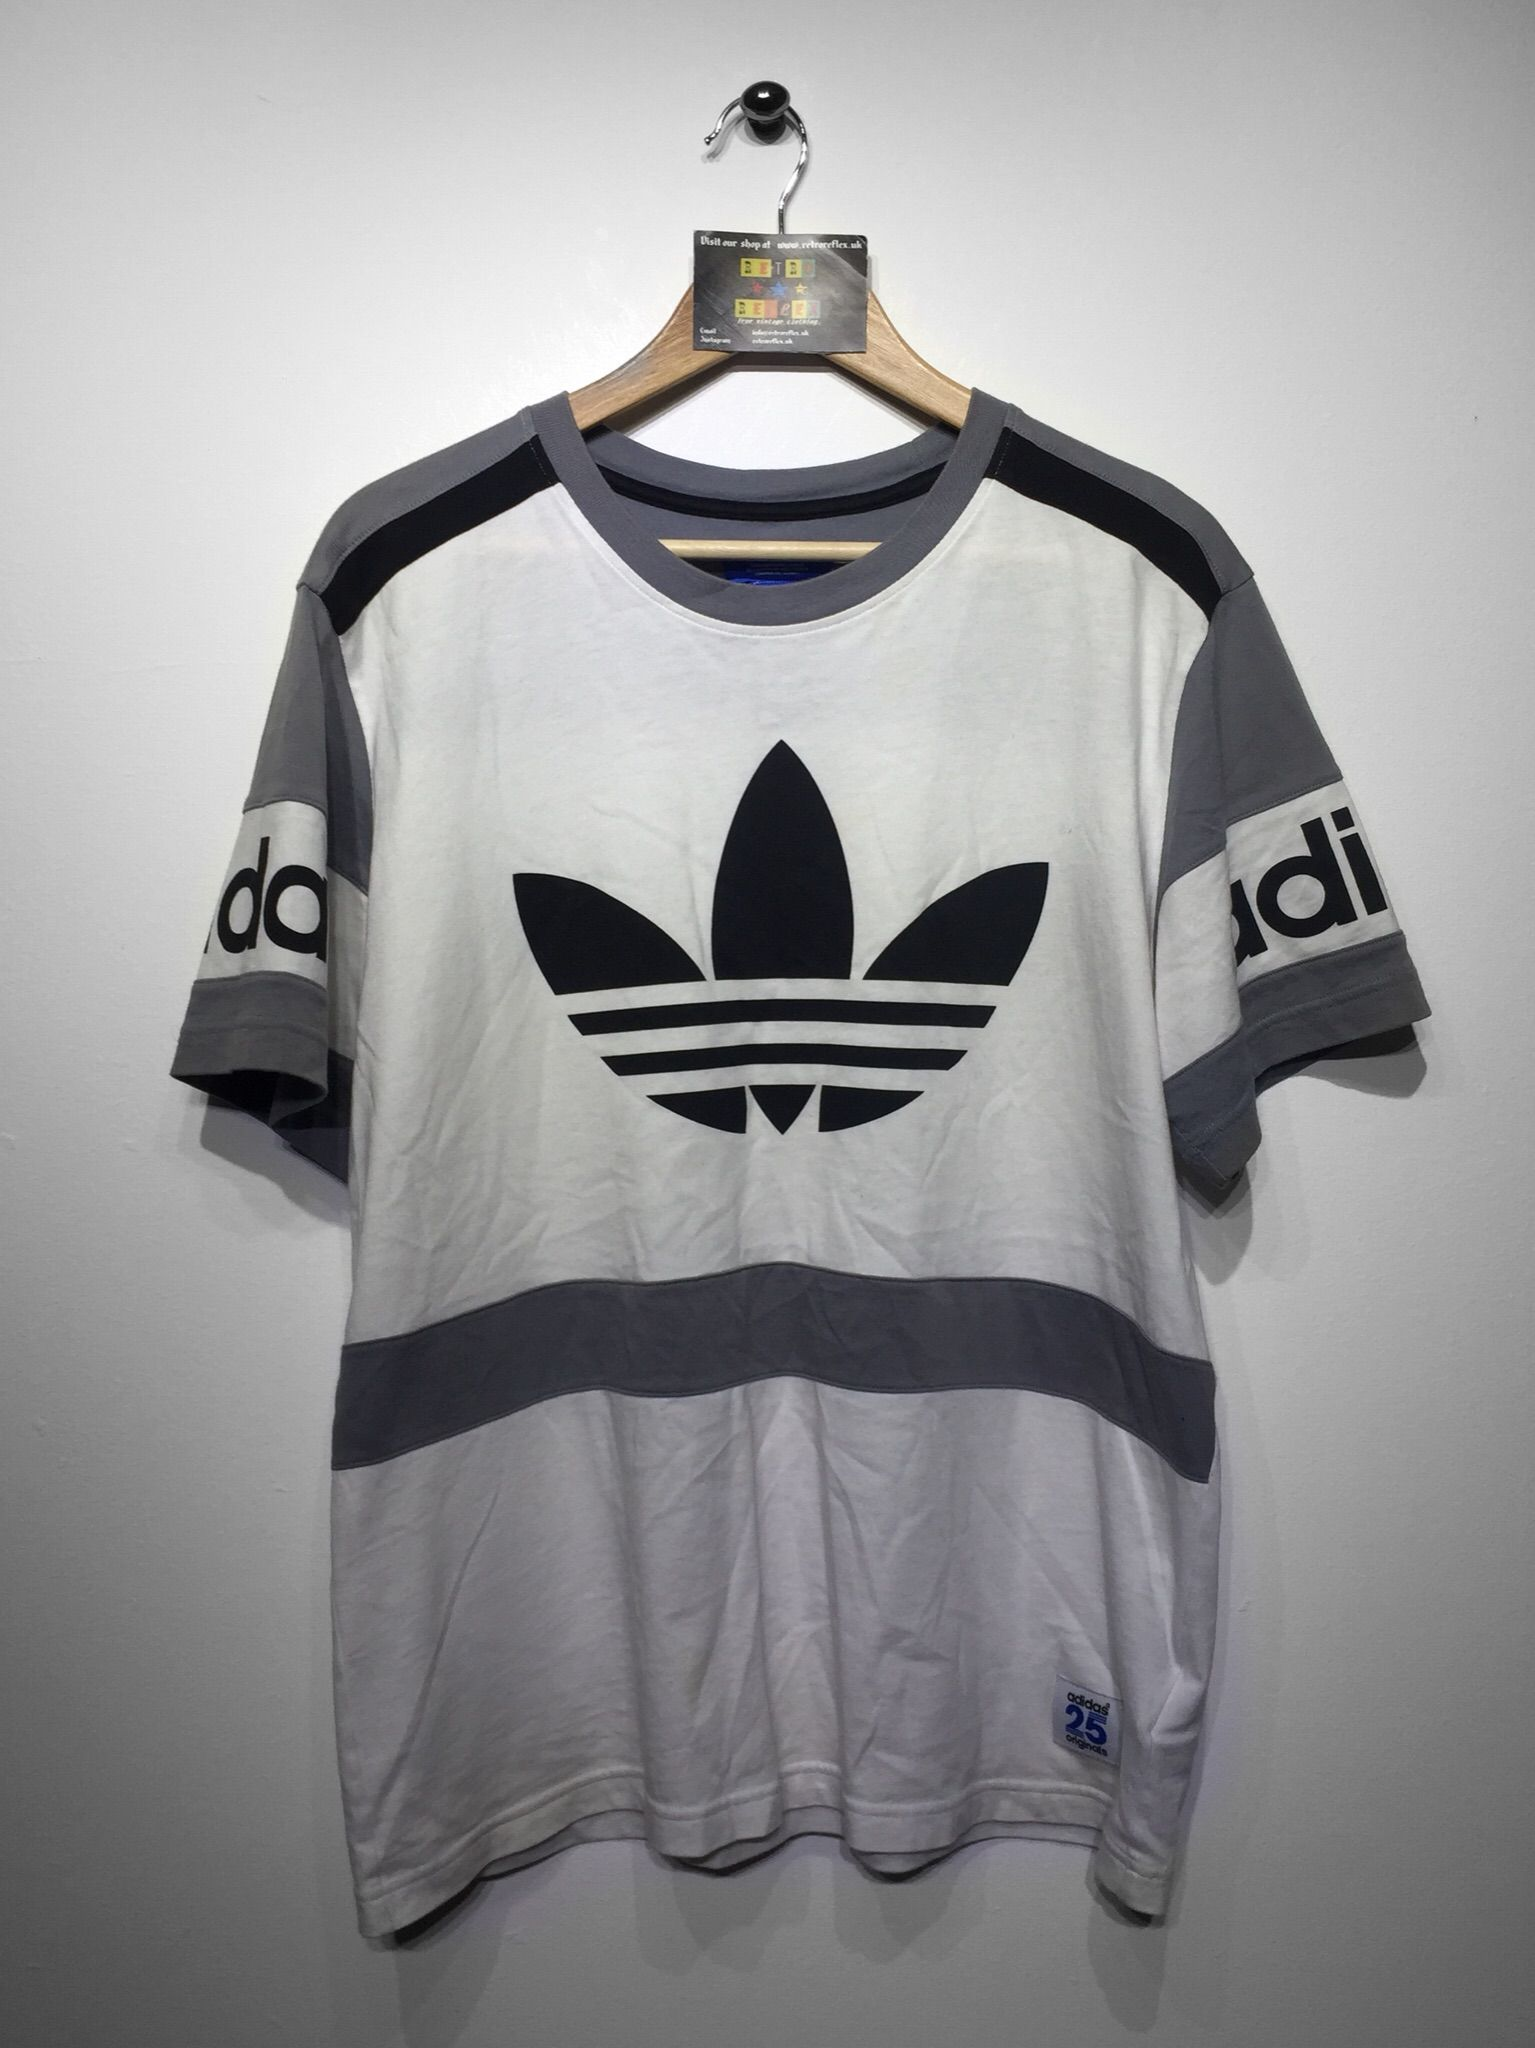 Pin on Adidas Obessed